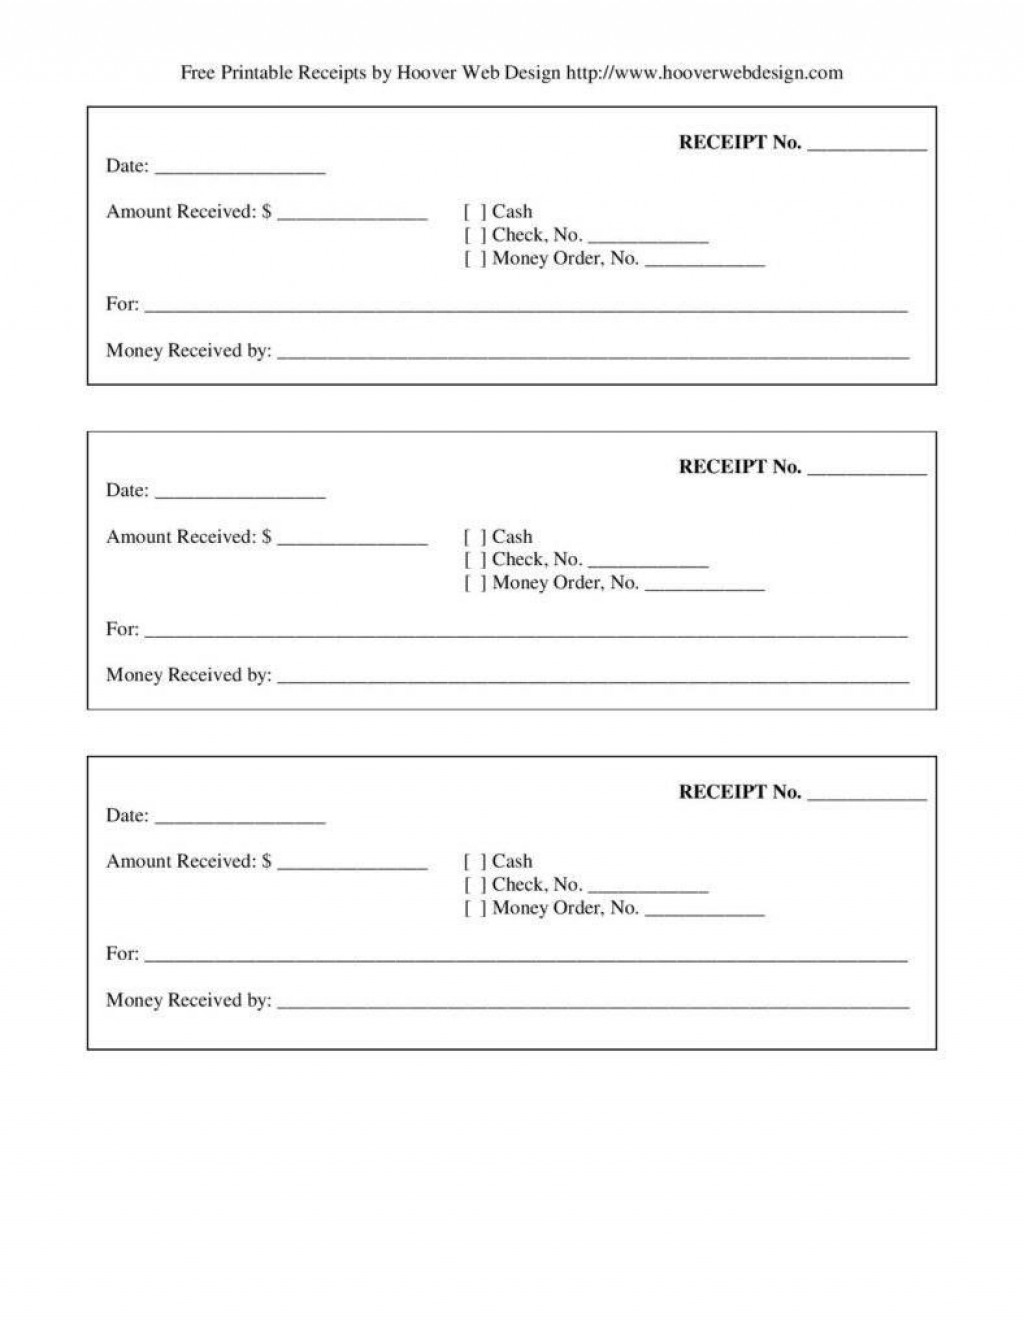 005 Free Printable Receipt Template ~ Ulyssesroom - Free Printable Receipt Template